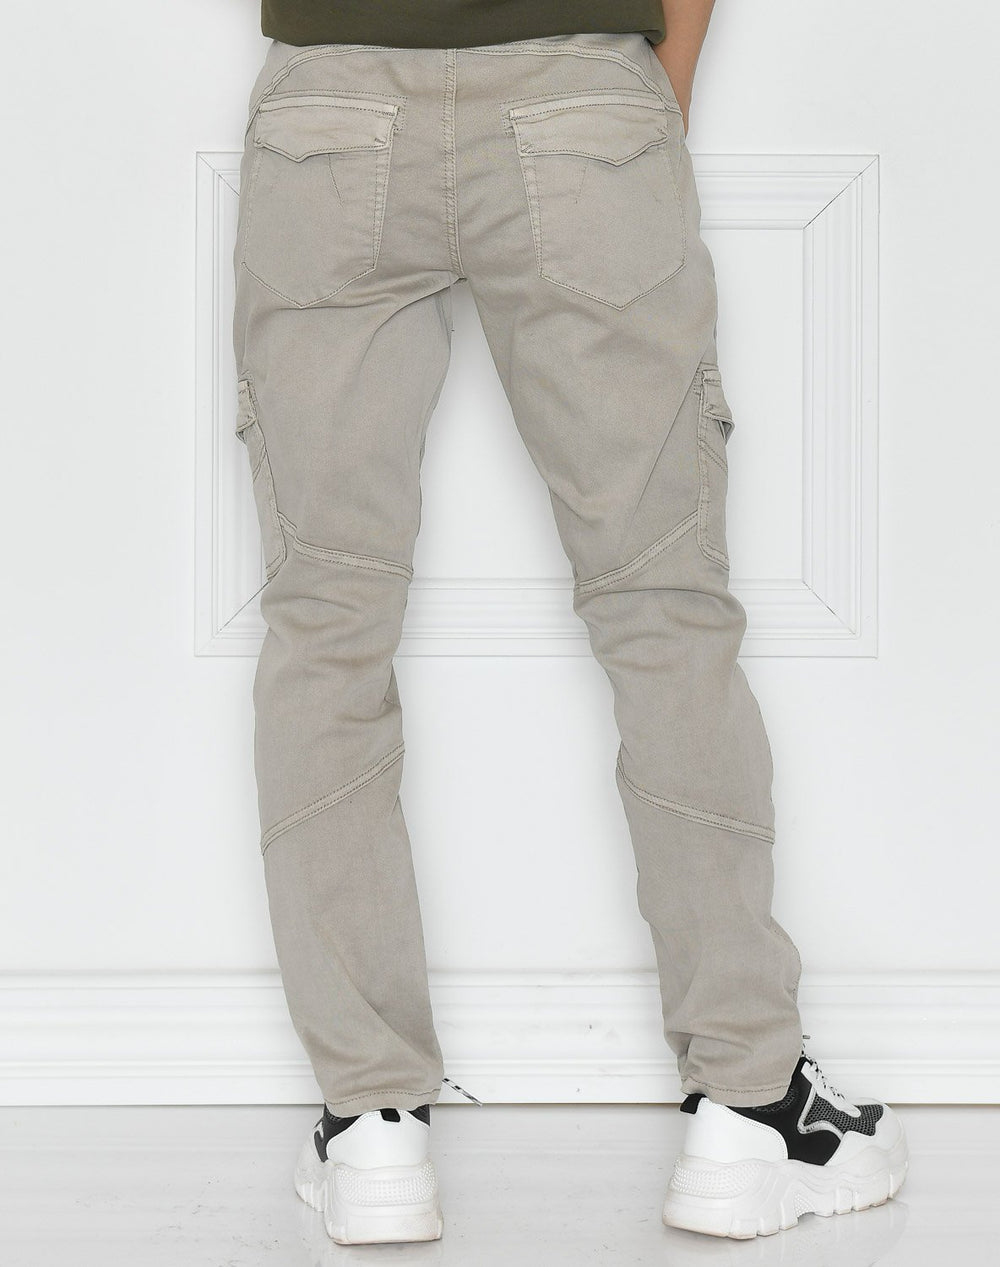 Culture CUabir cargo pants 7/8 dove - Online-Mode